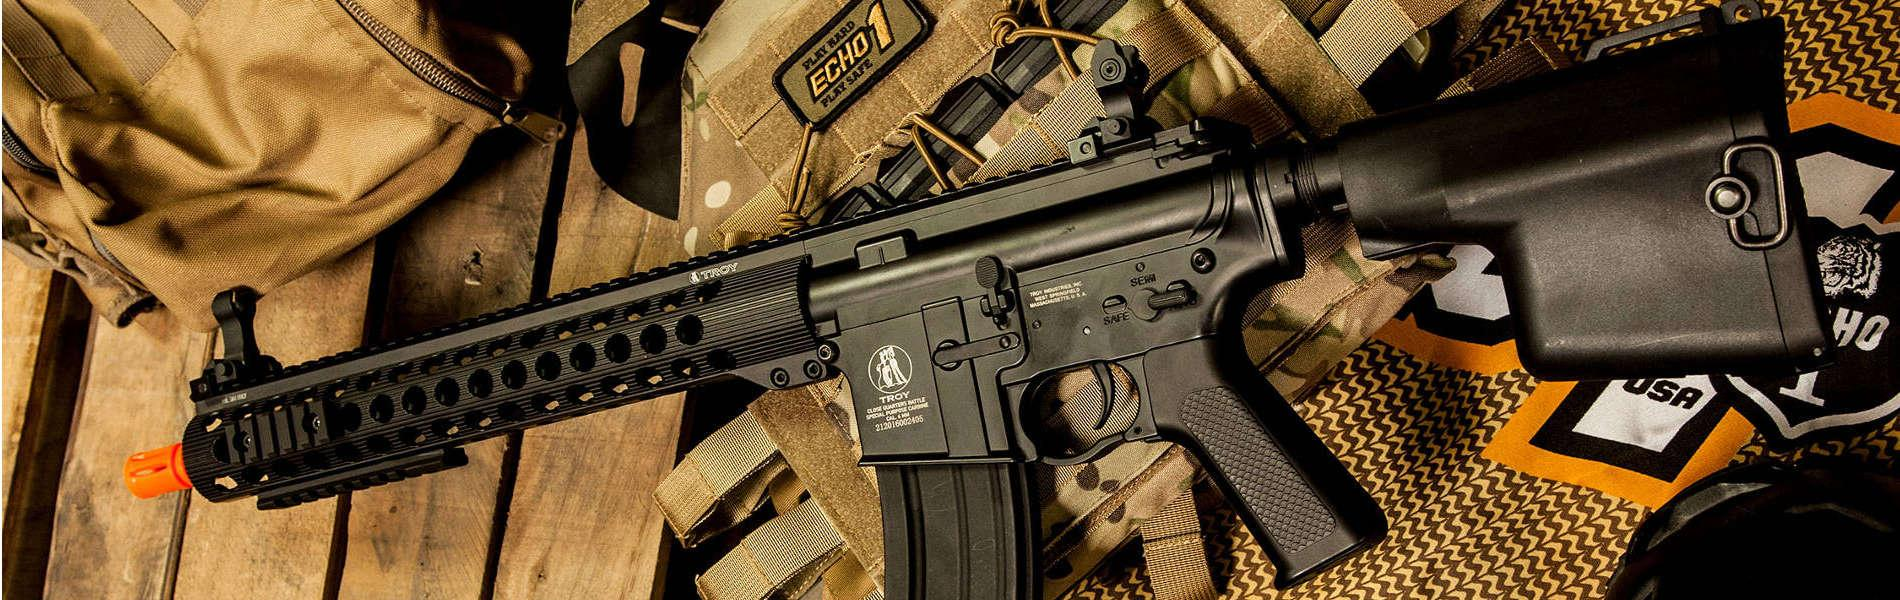 t81_airsoft